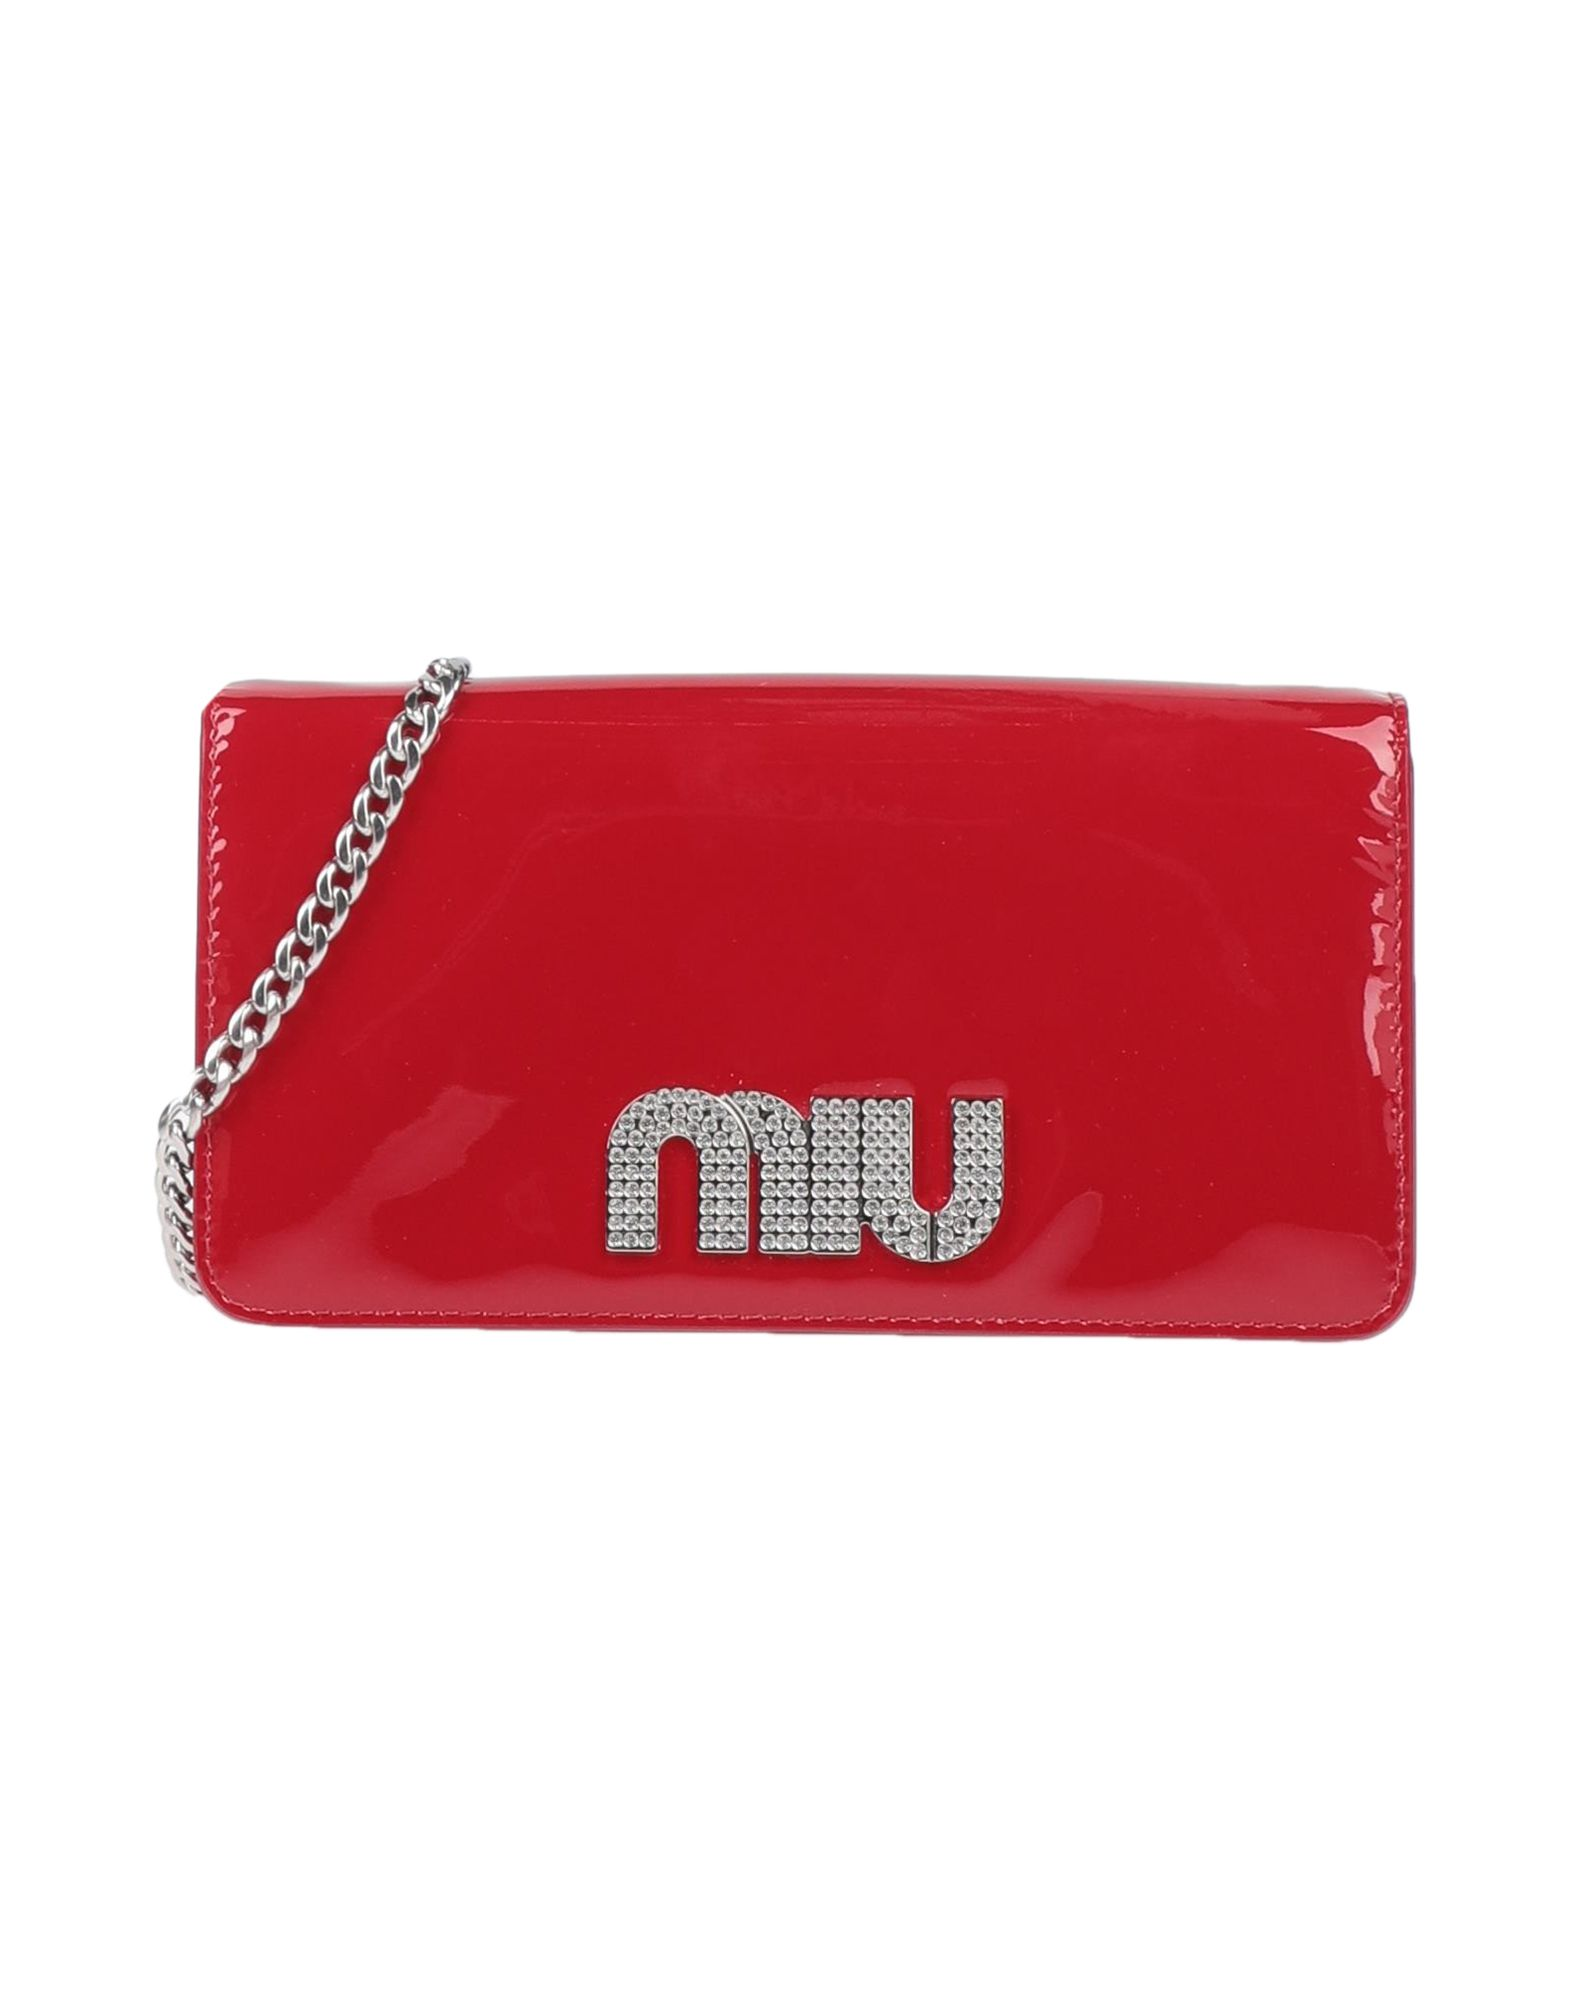 MIU MIU Cross-body bags - Item 45519697